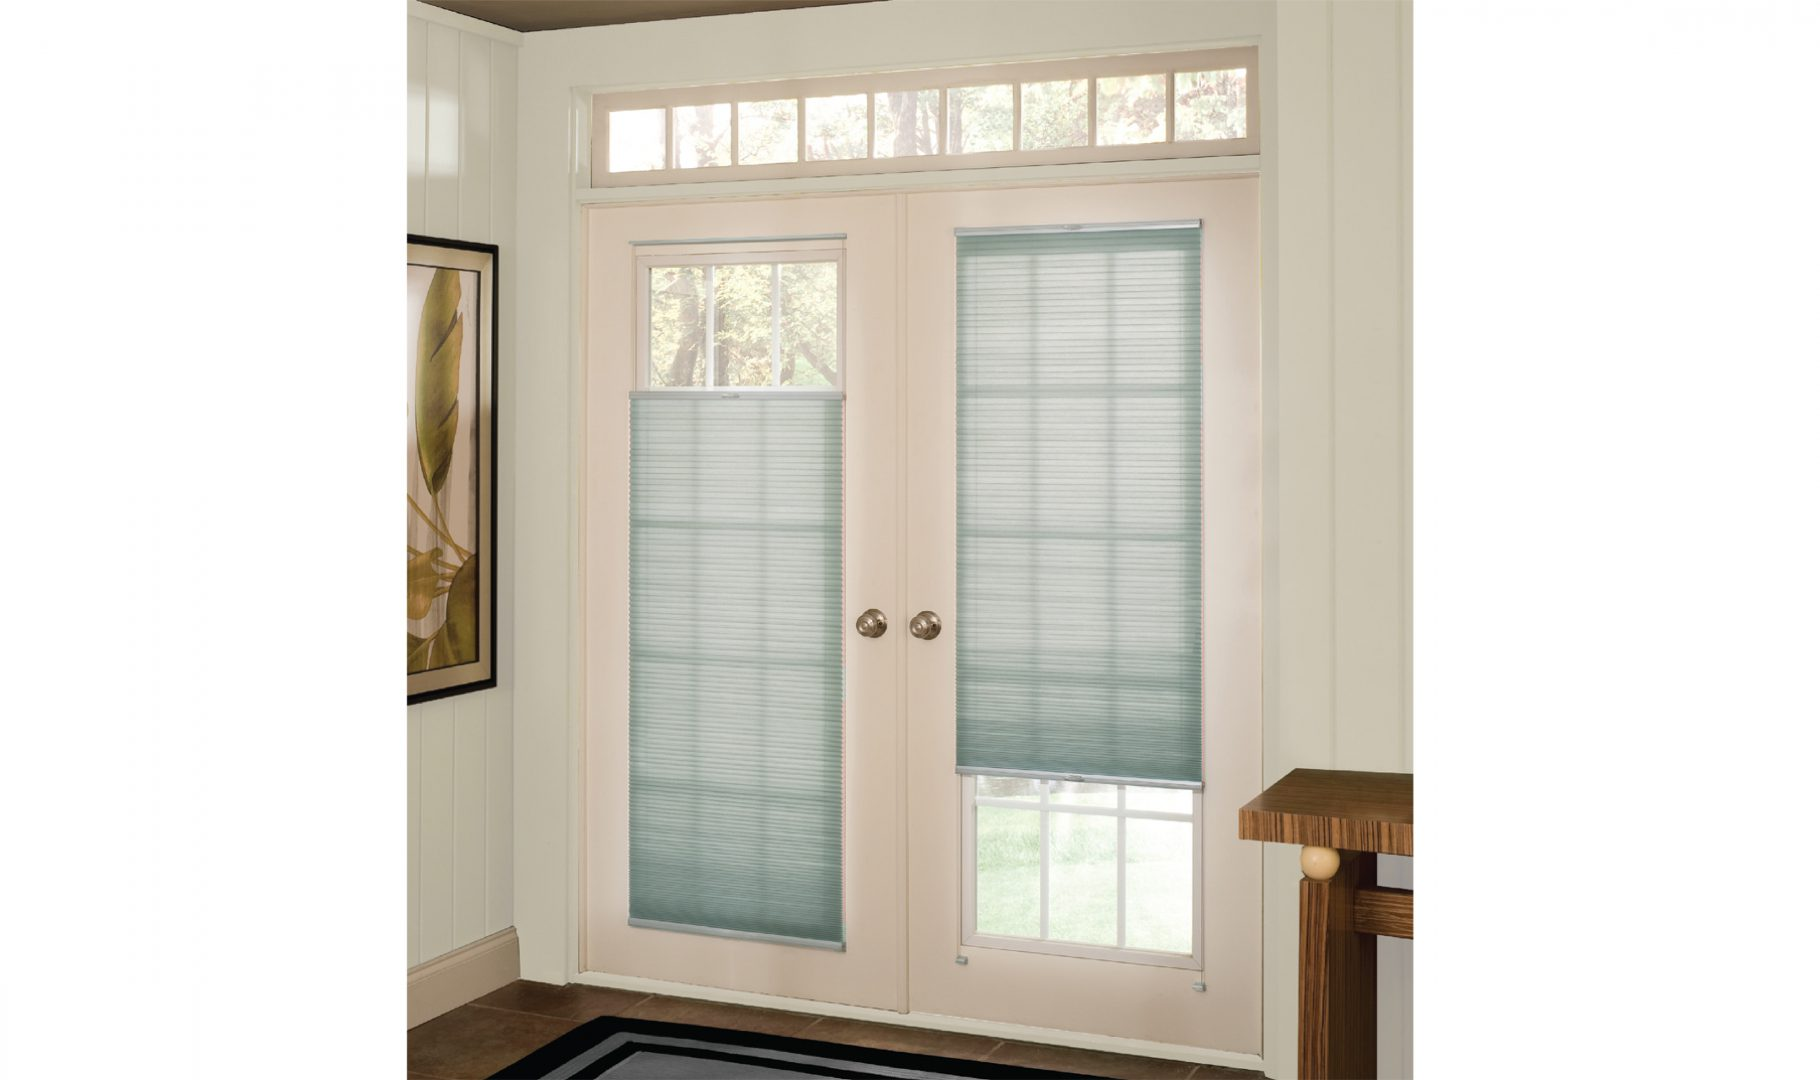 ClearFit™ cellular shades for doors